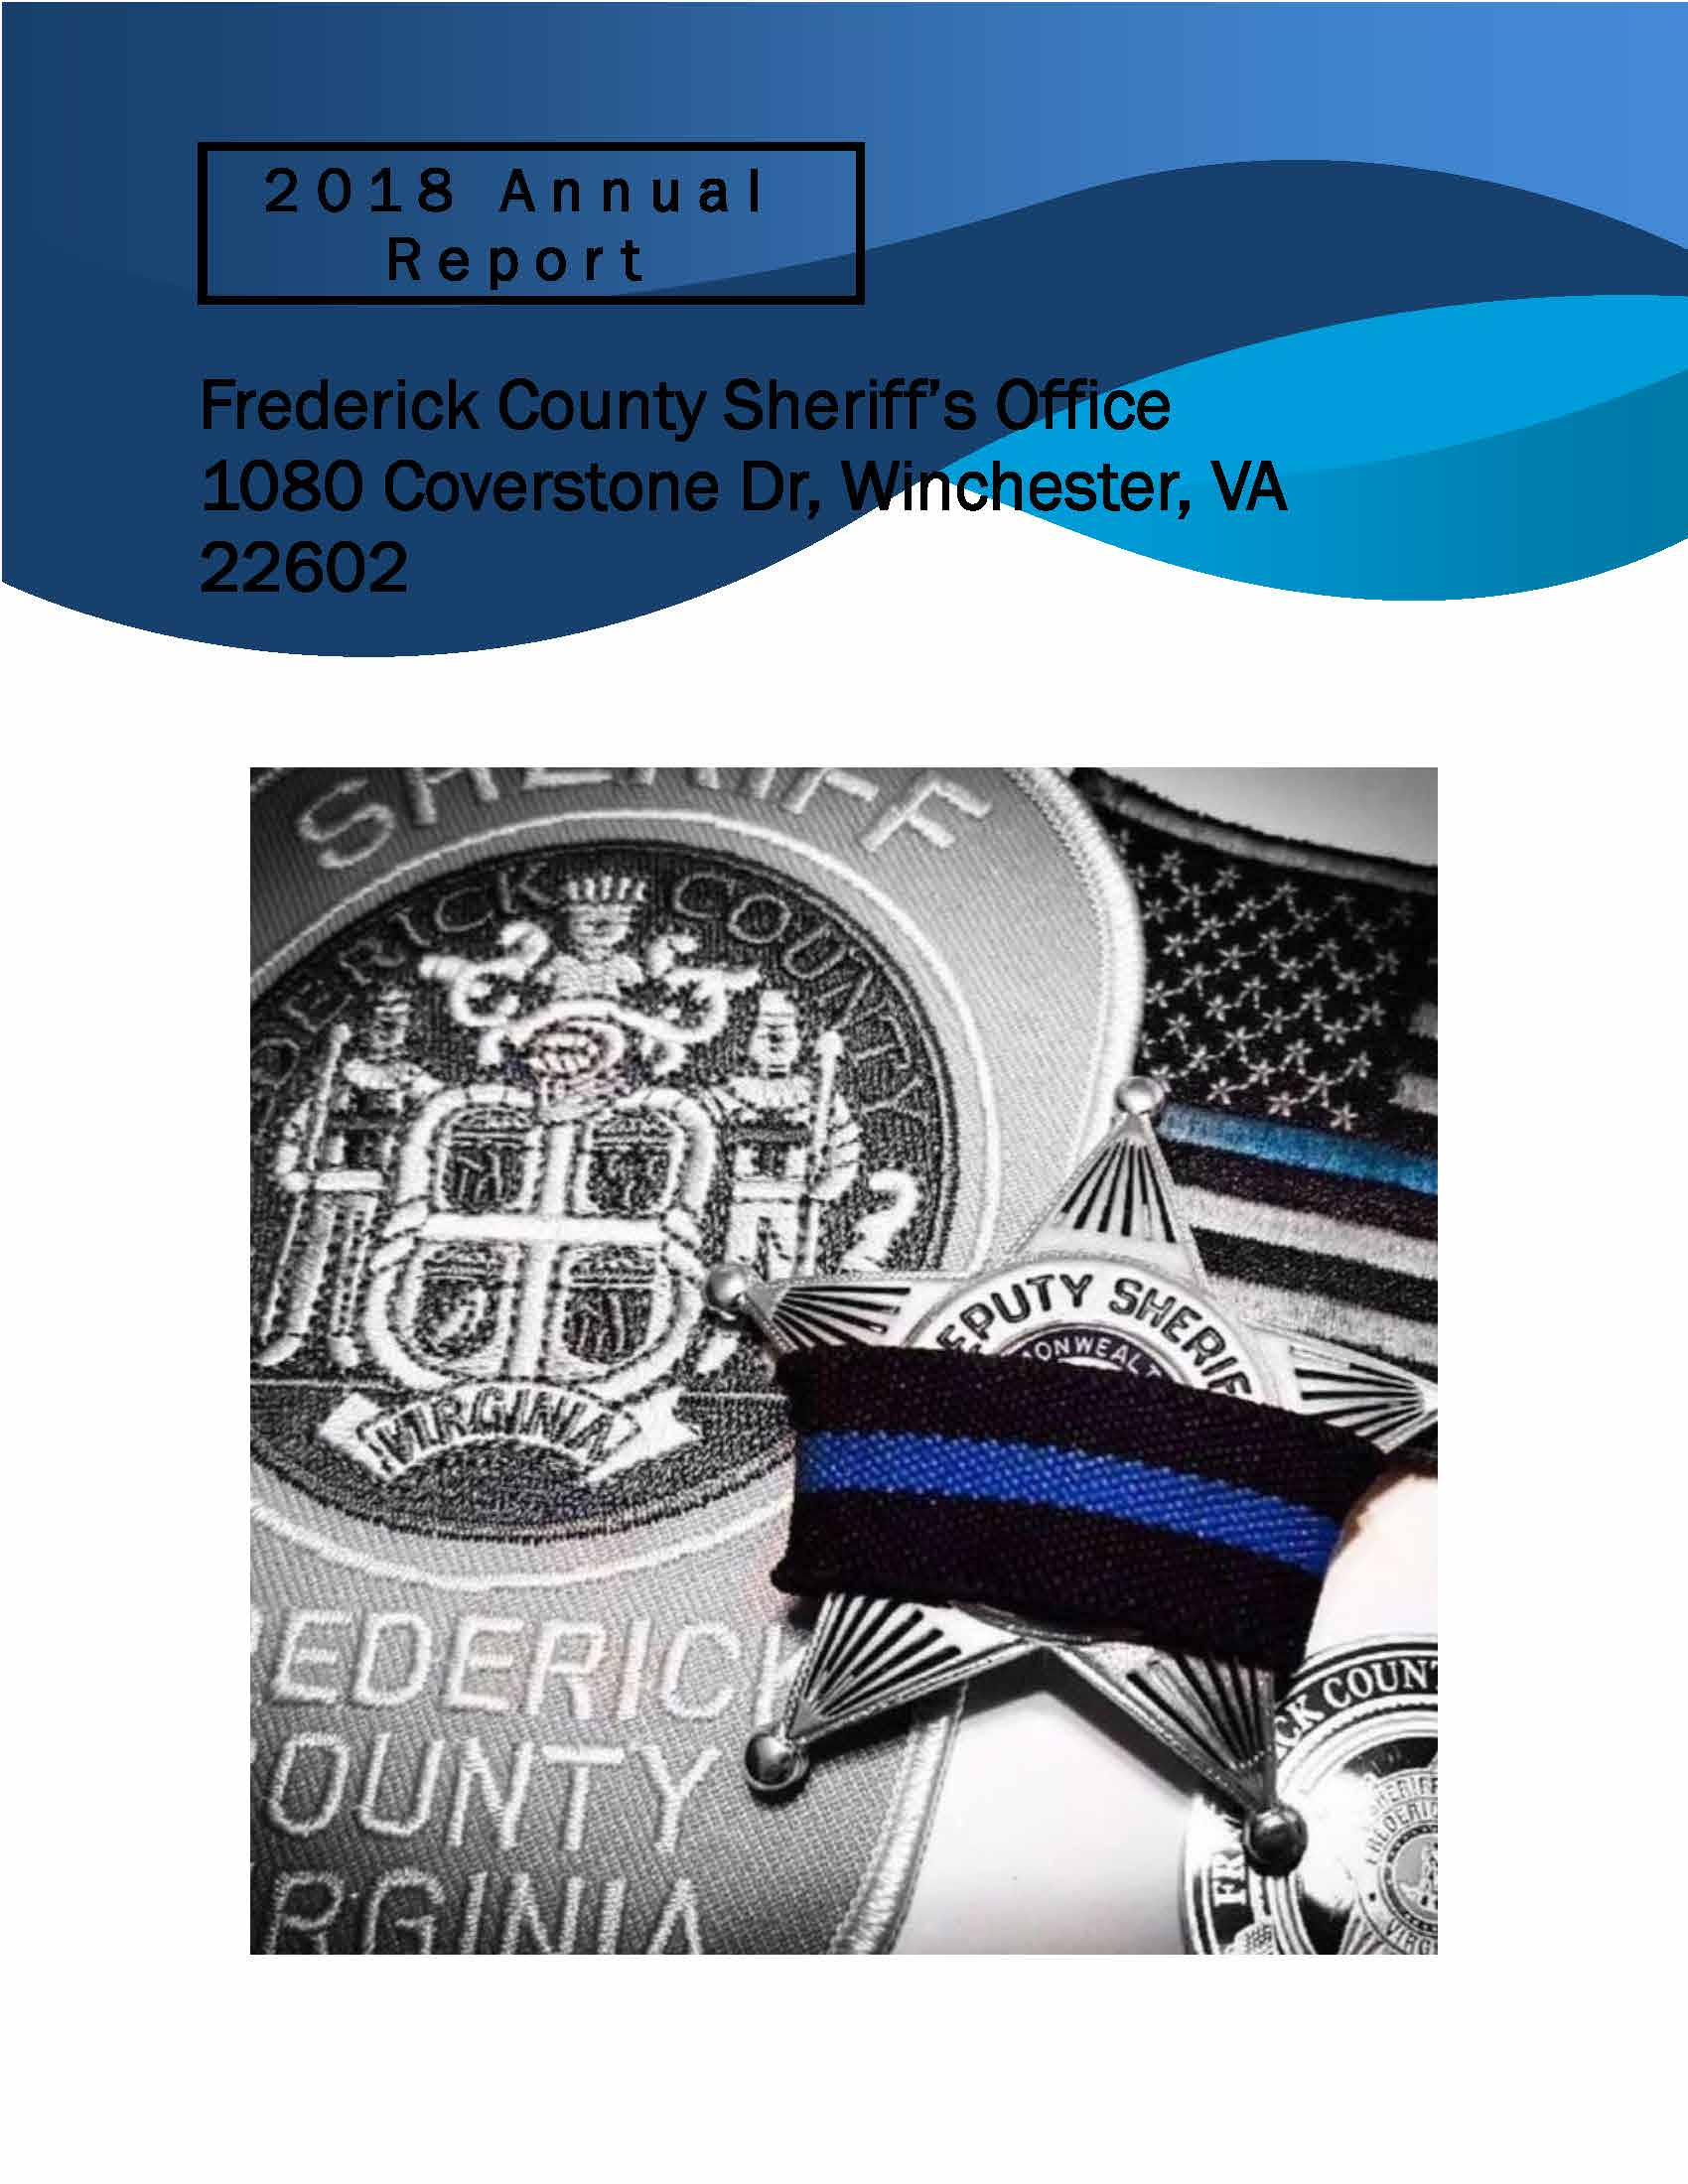 Sheriff's Office 2018 Annual Report